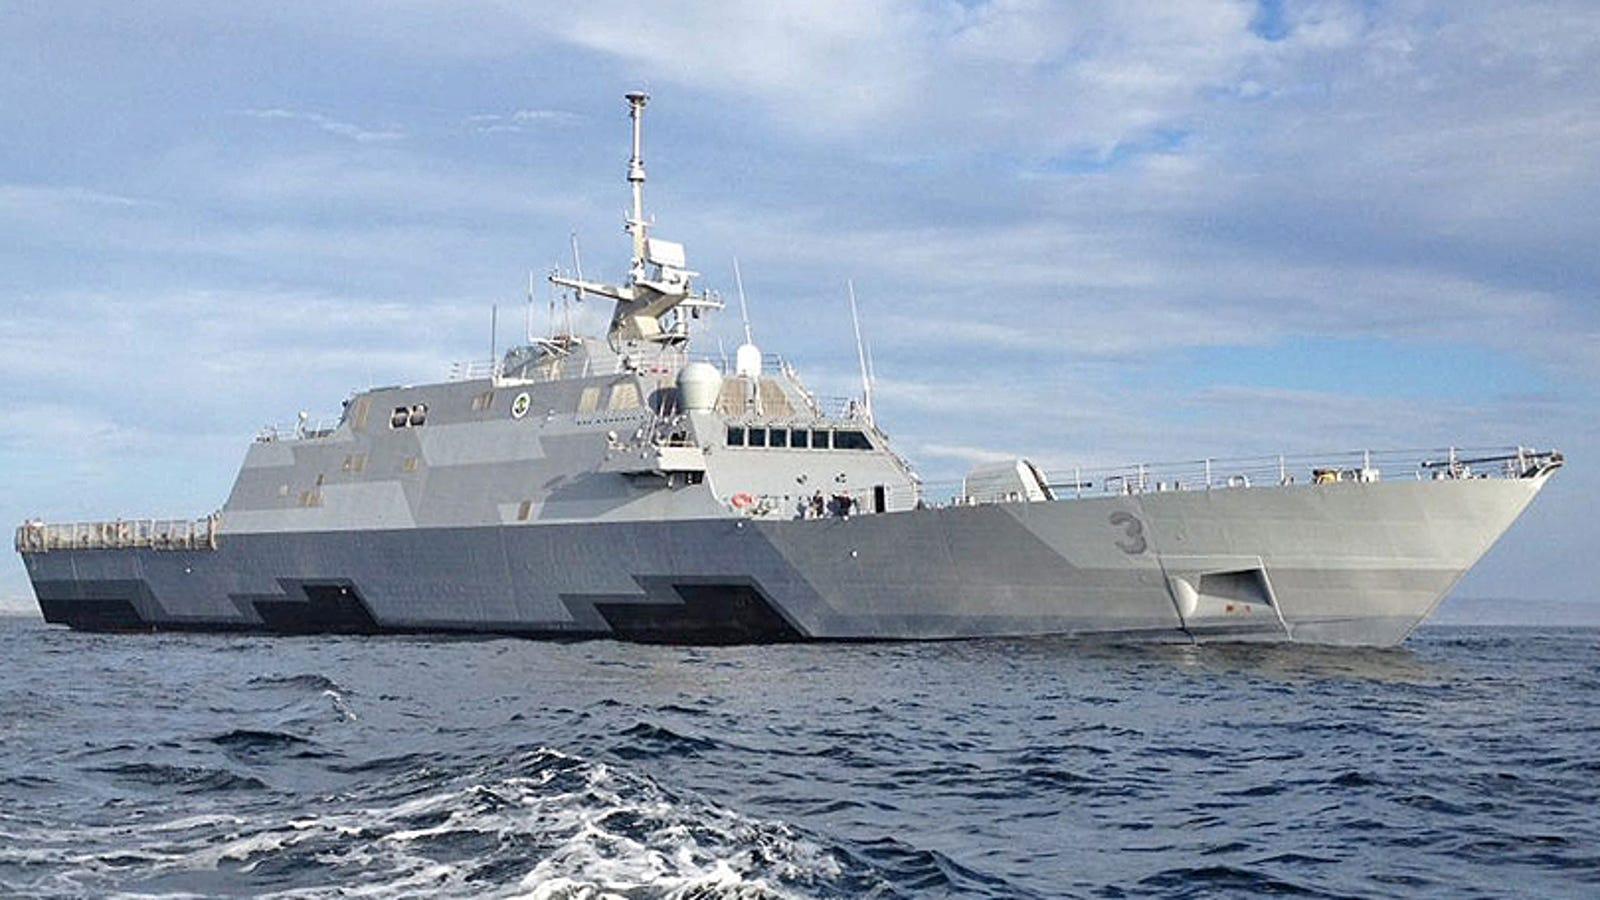 Saudi Arabia has ordered a hydrographic vessel in Spain 84